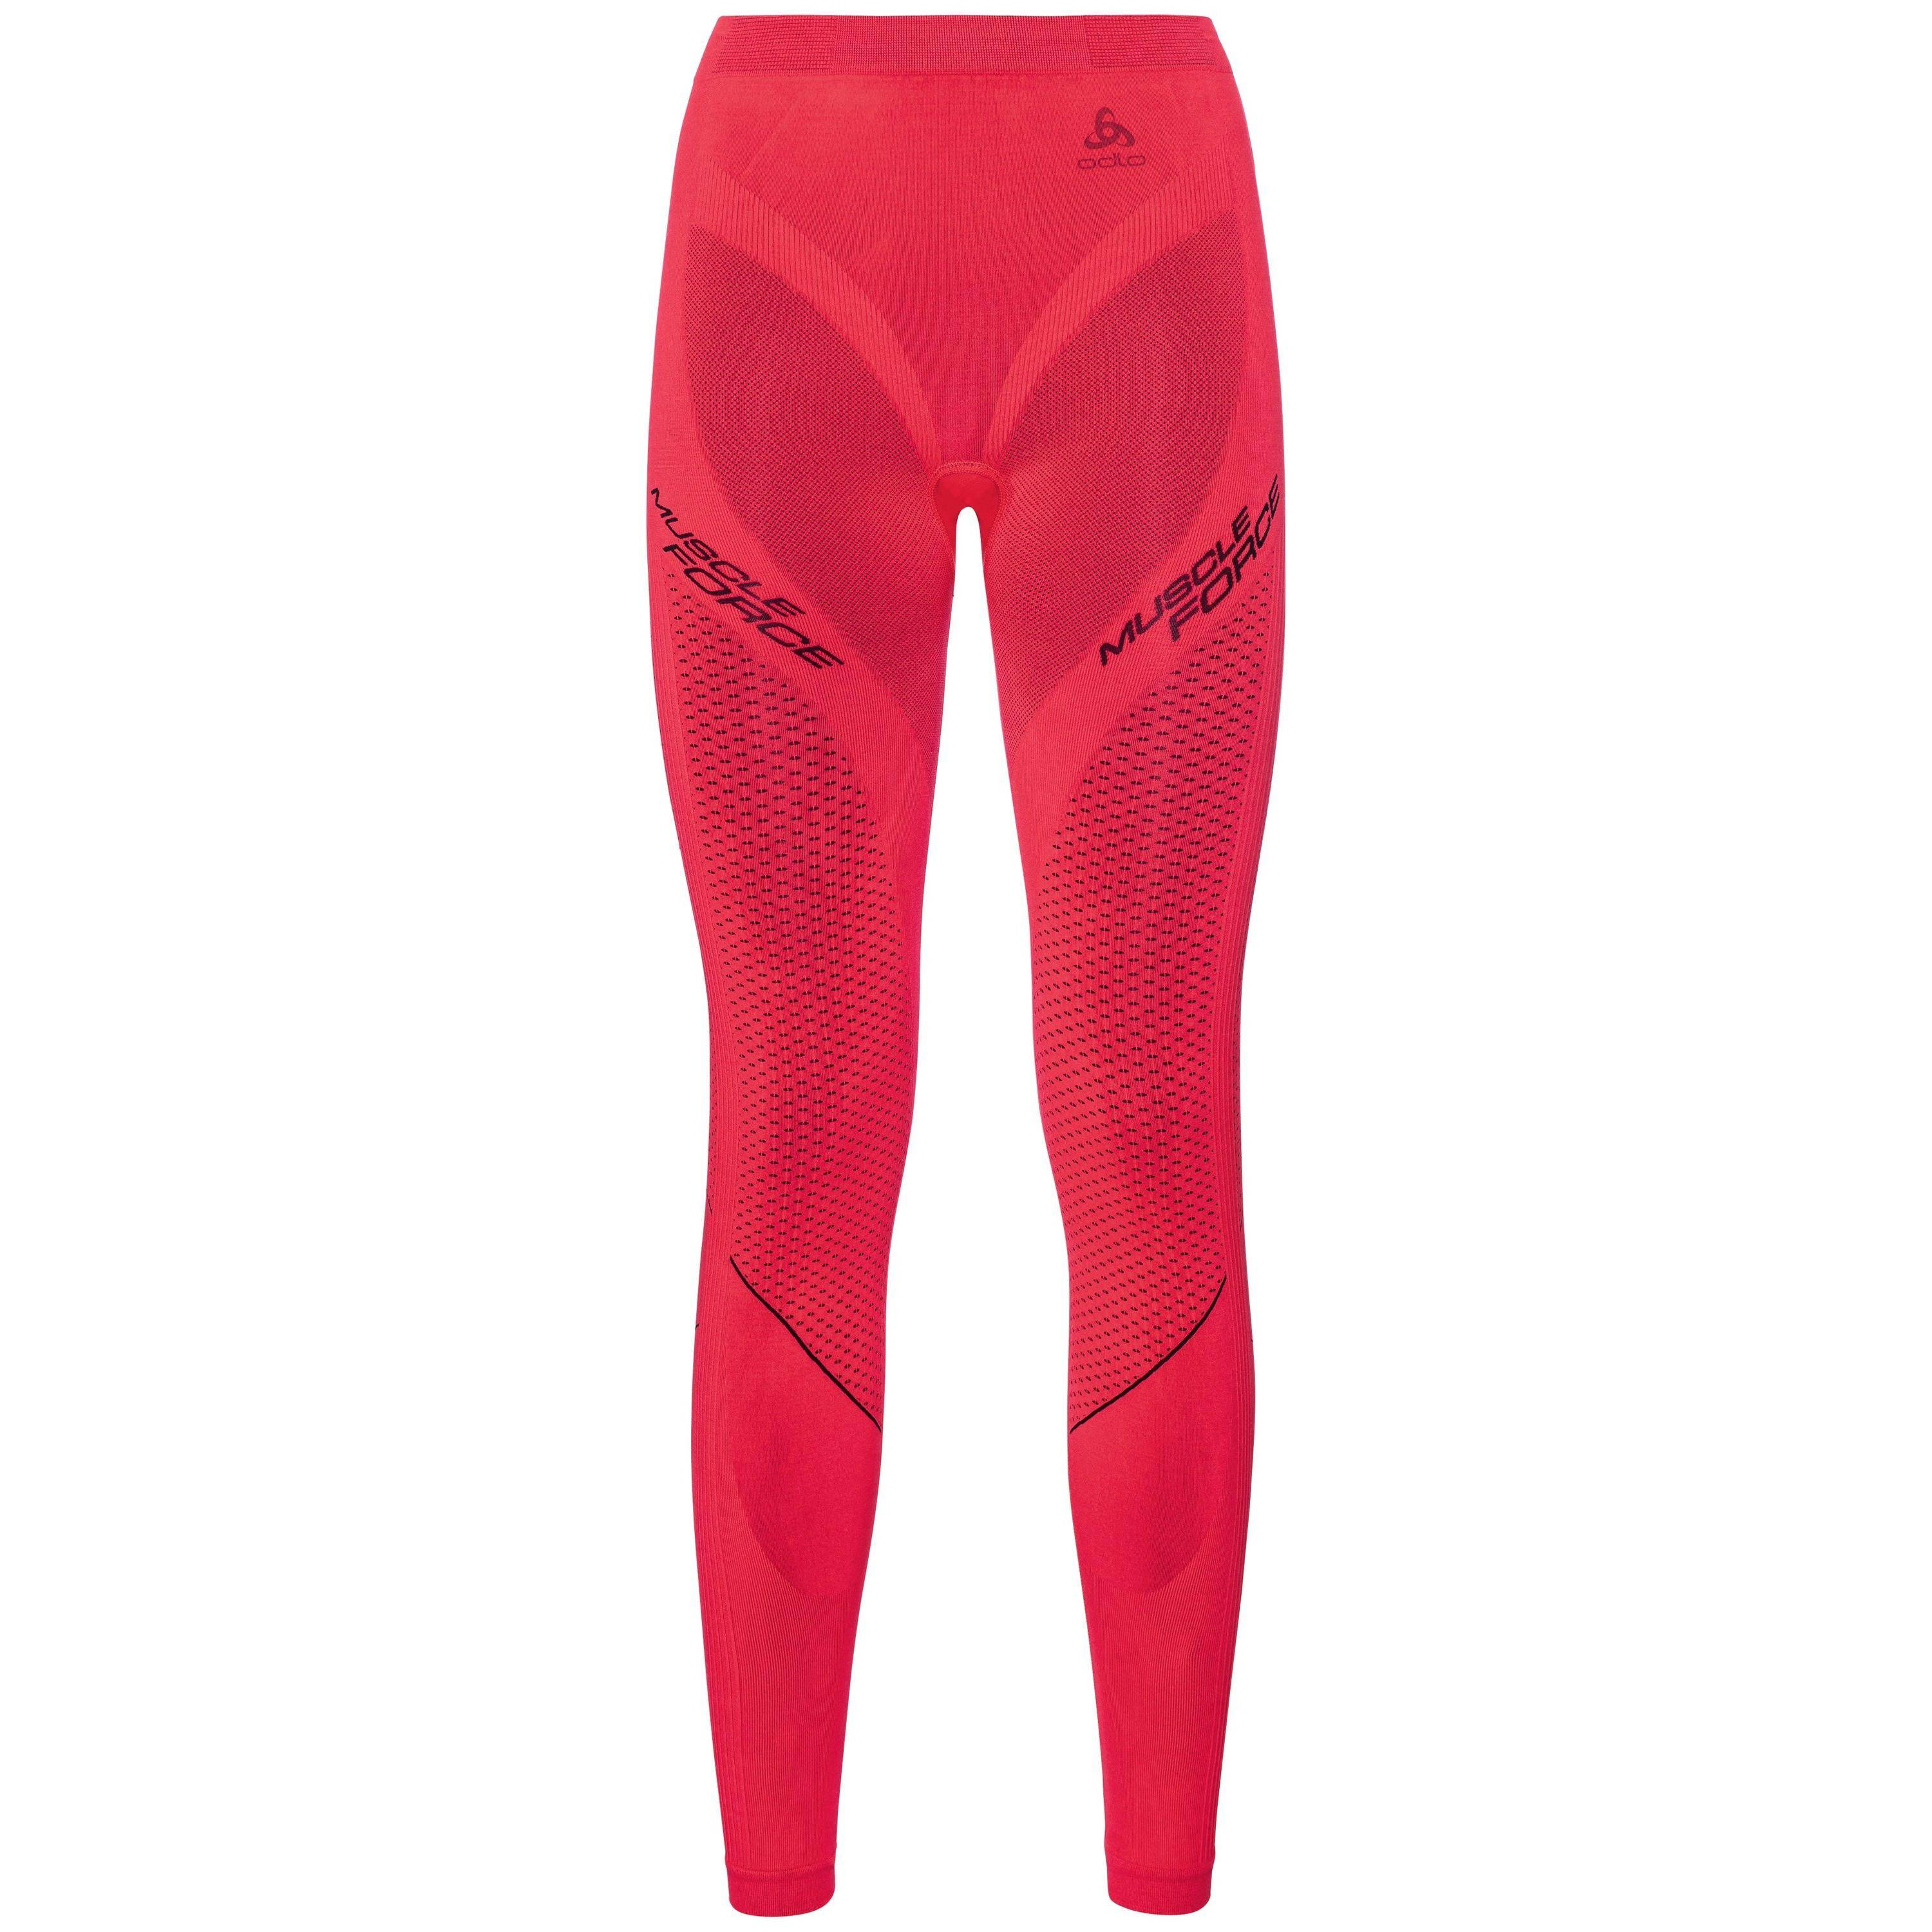 Odlo SVS Bas collant Performance MUSCLE FORCE RUNNING Warm diva pink - odyssey gray taille: XL